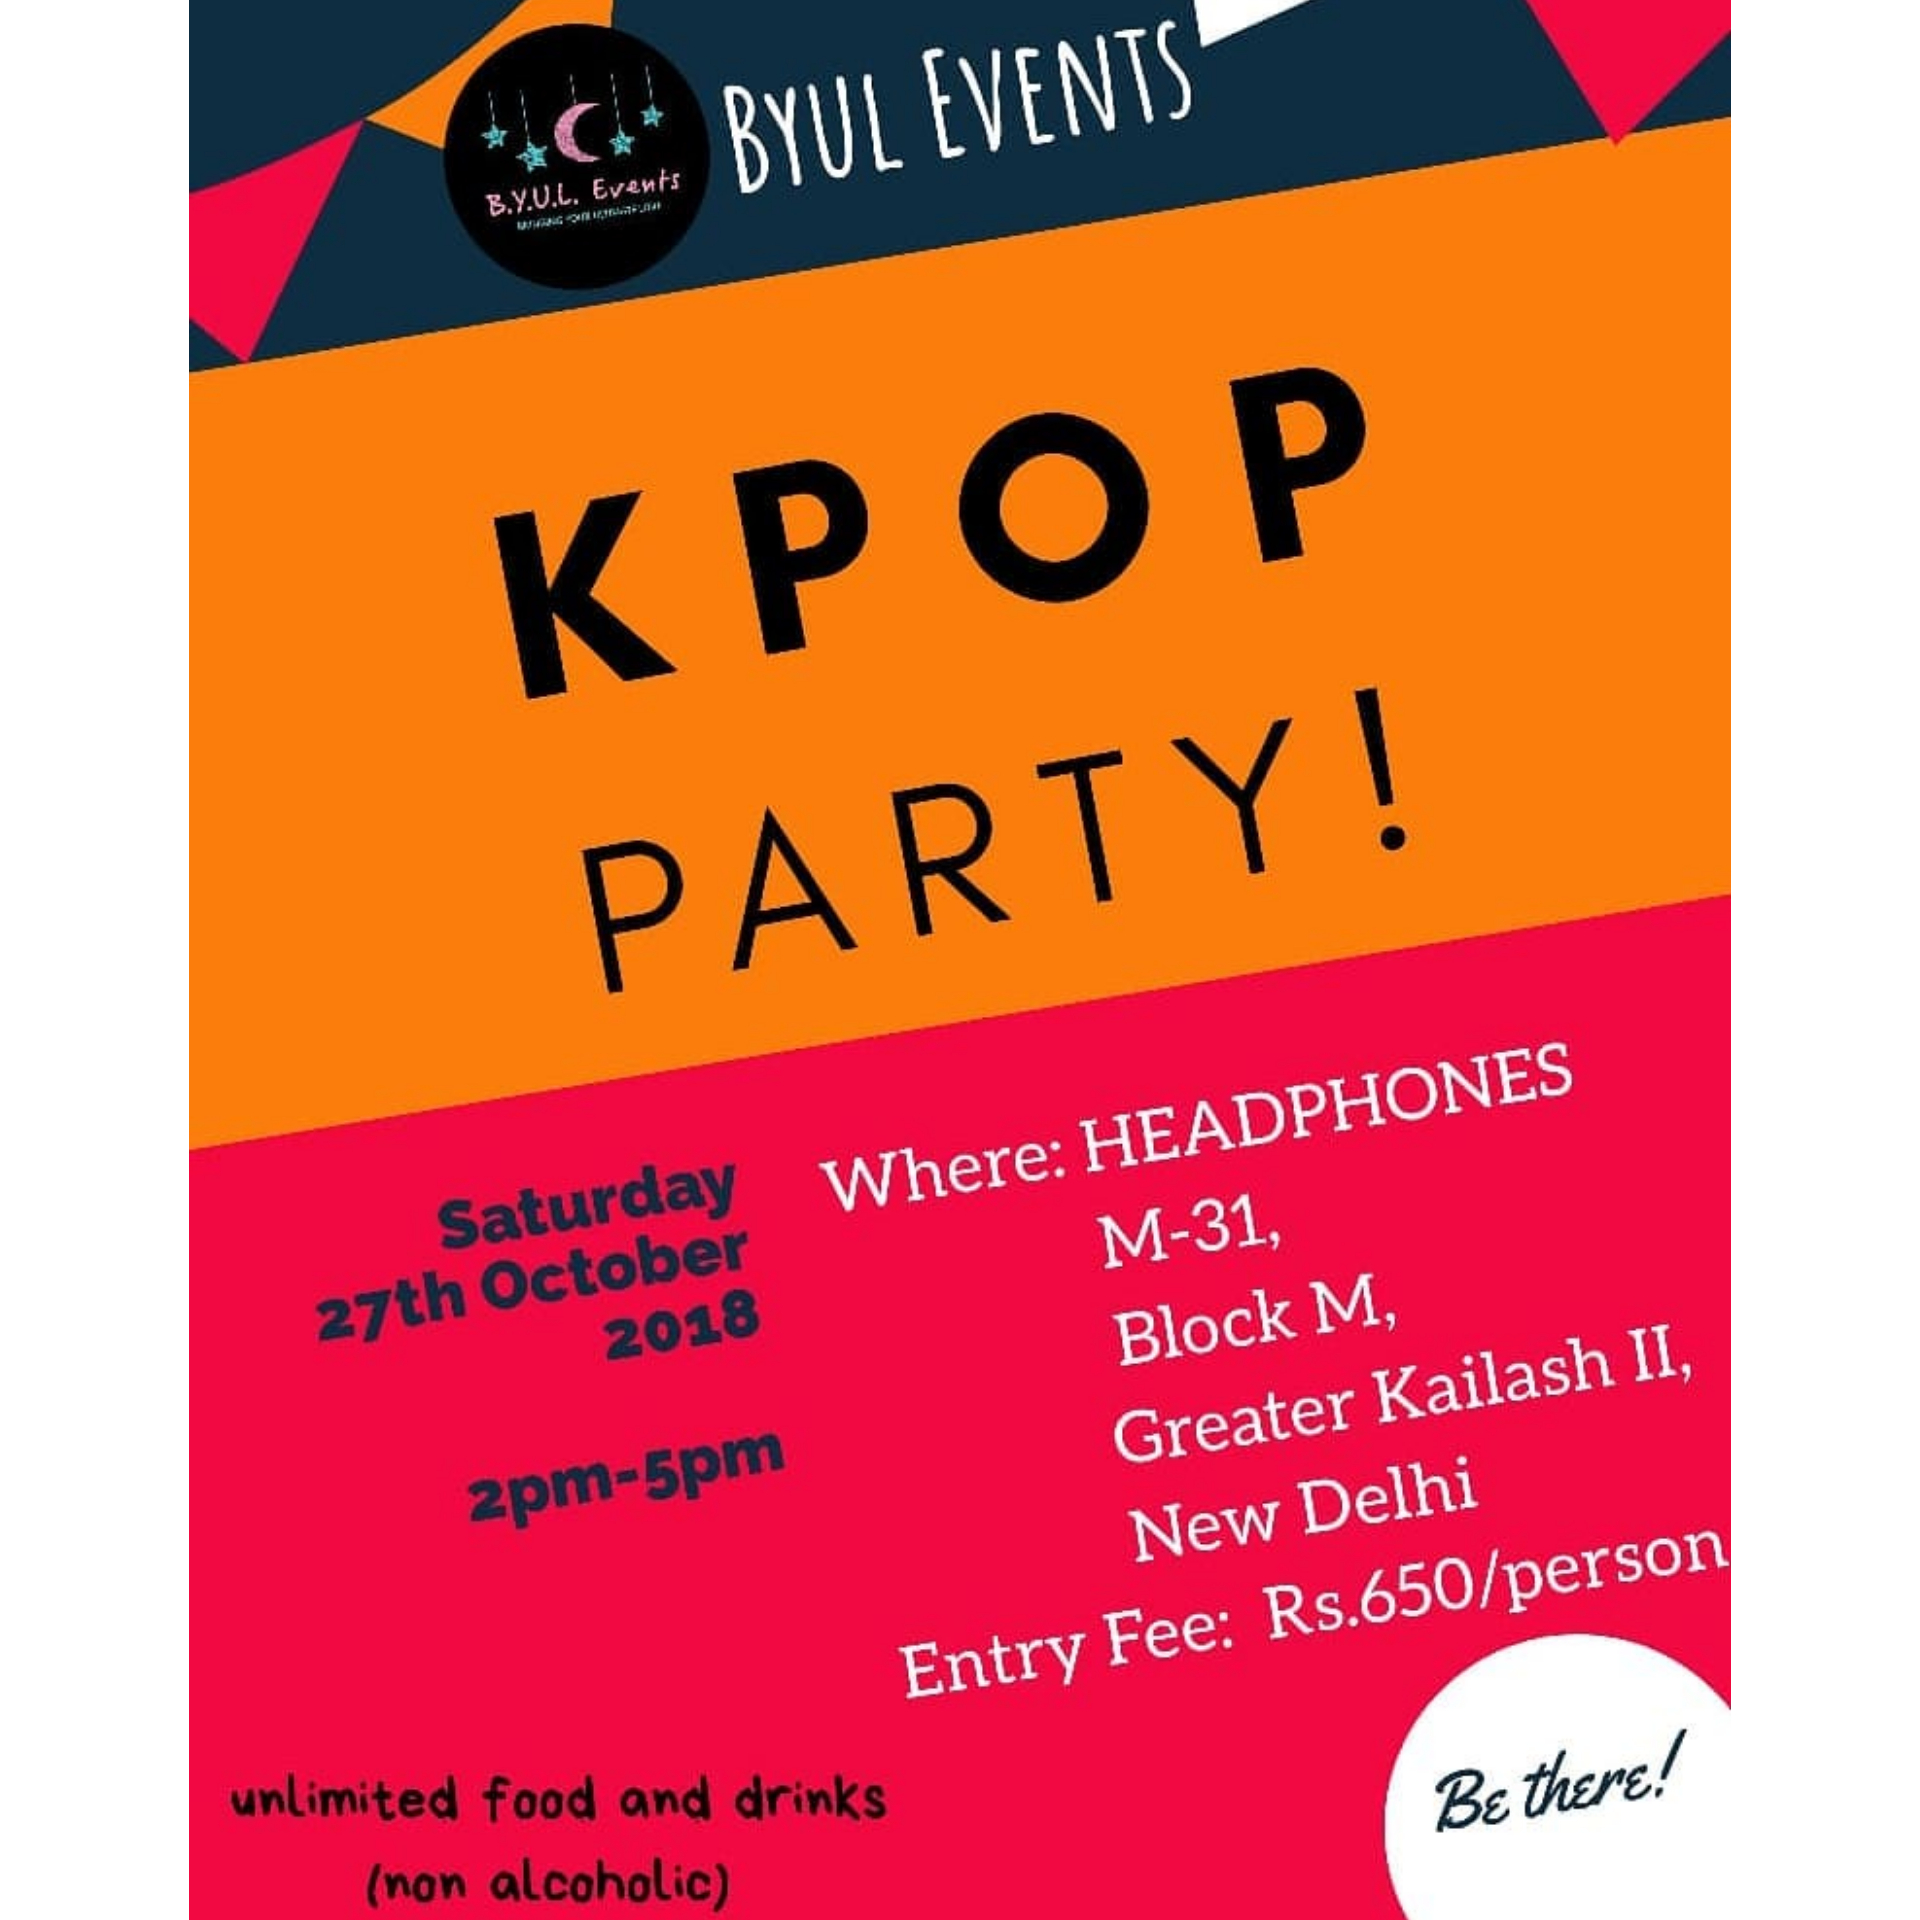 KPOP Dance party Delhi